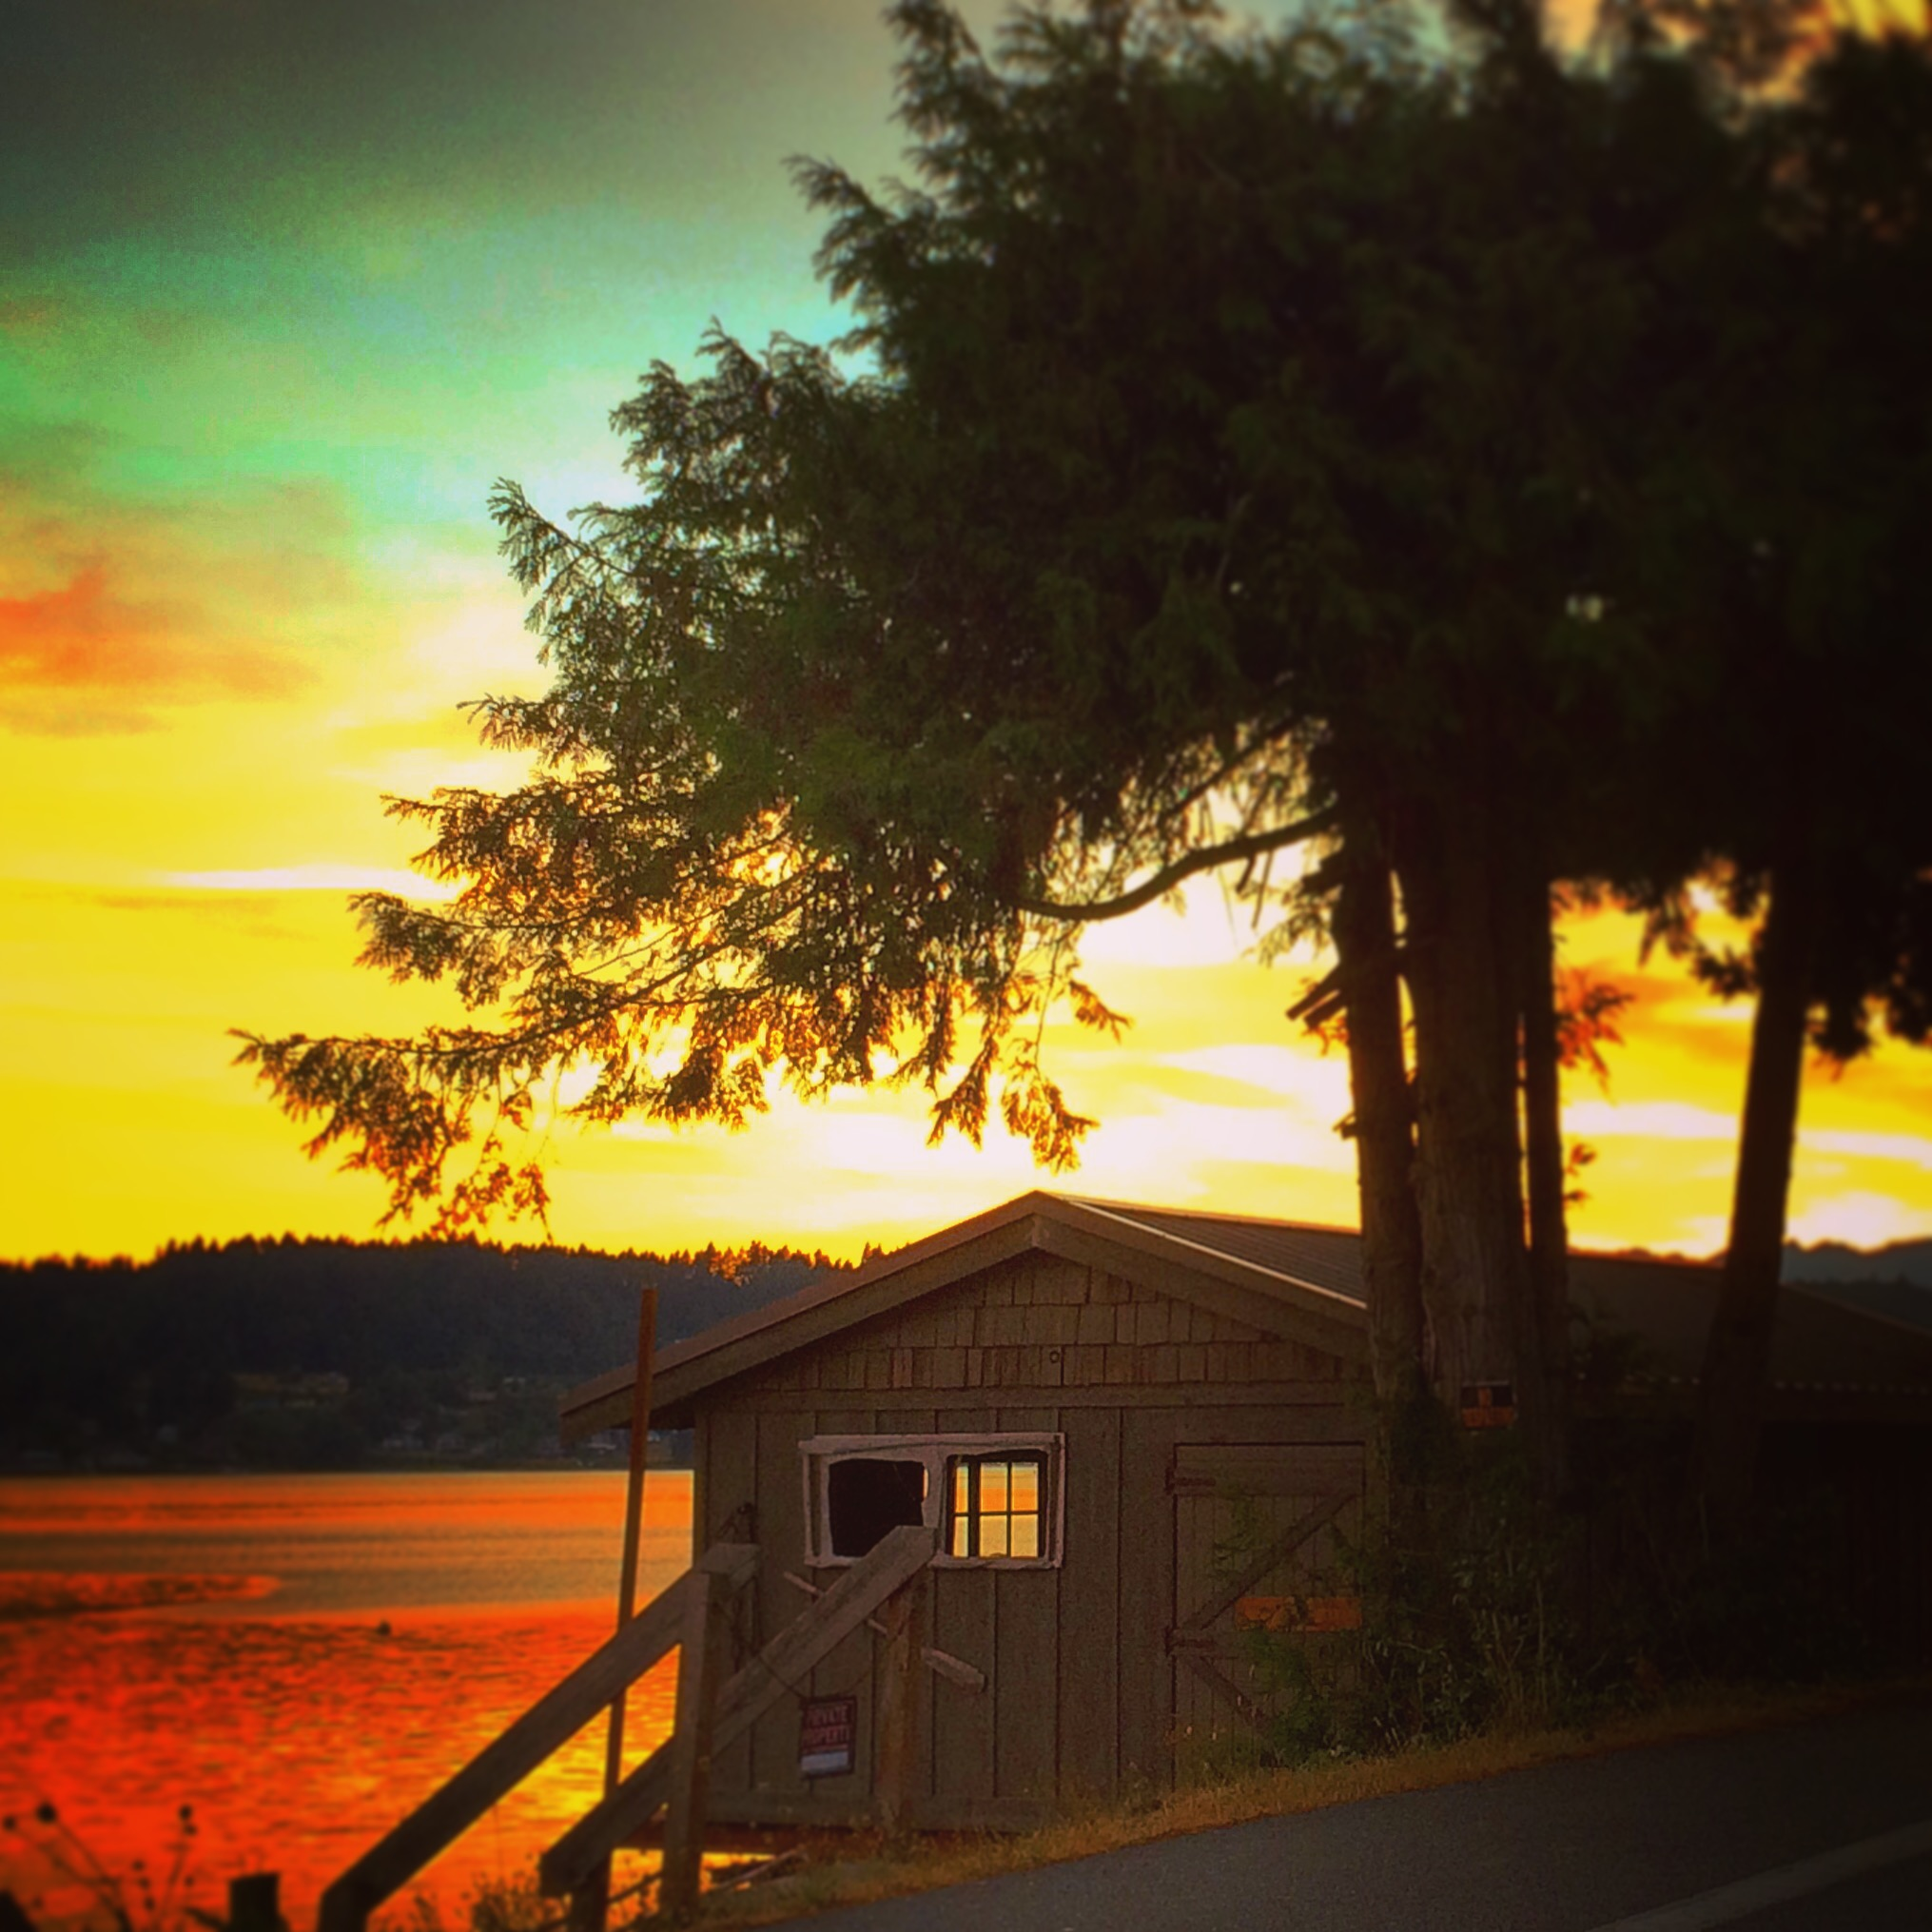 Poulsbo Boathouse at Sunset Liberty Bay 2traveldads.com